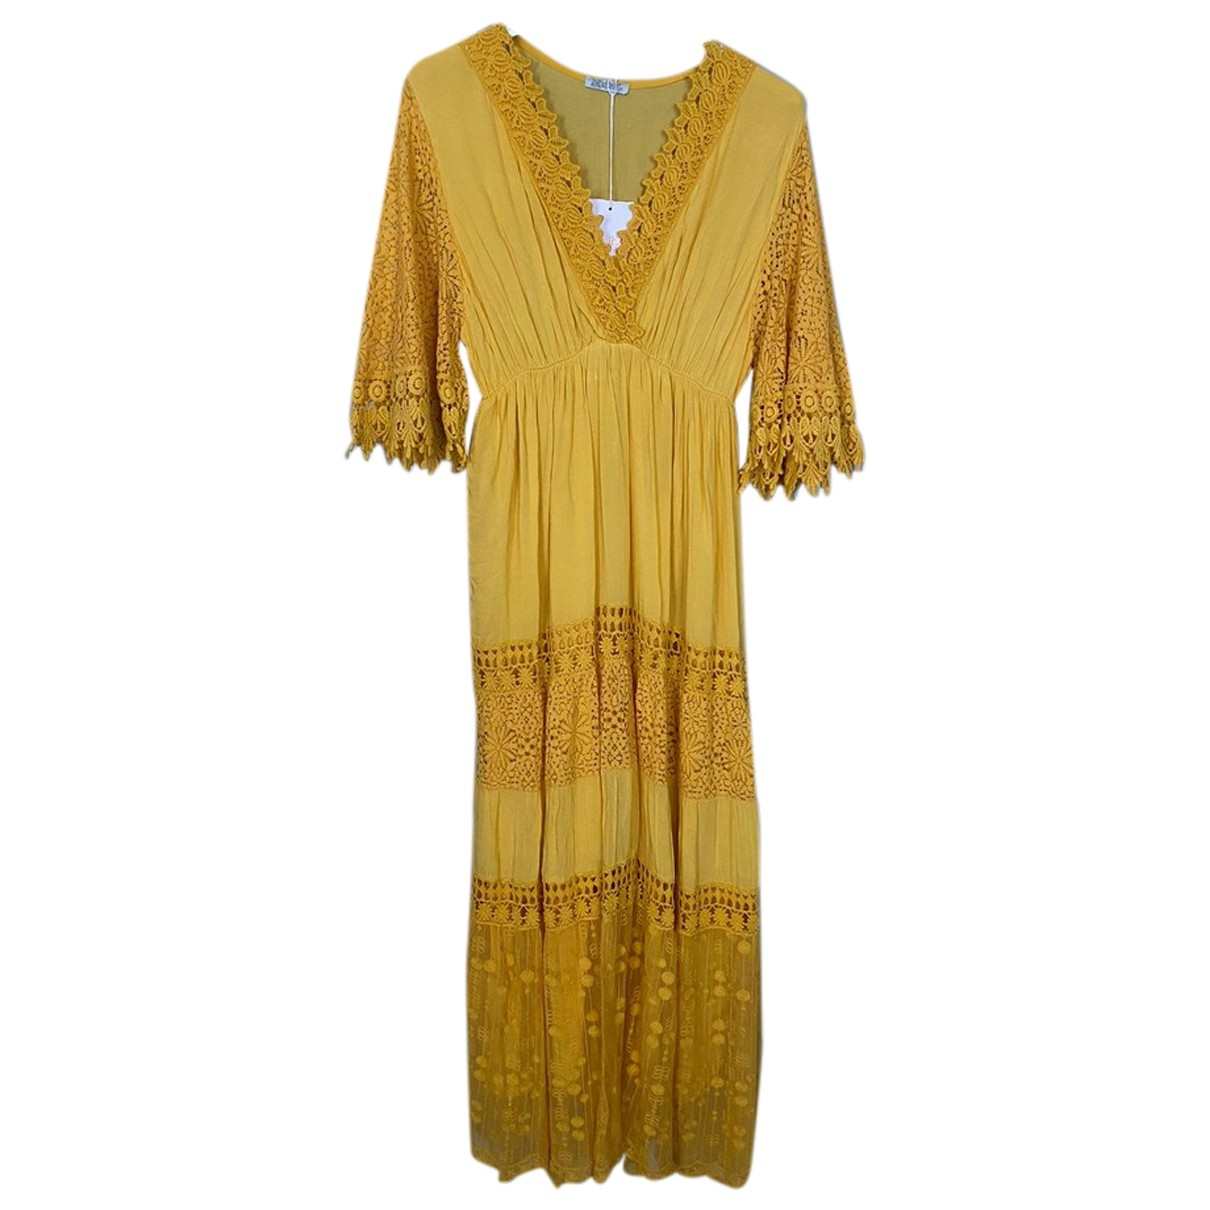 Non Signé / Unsigned \N Yellow Lace dress for Women One Size FR